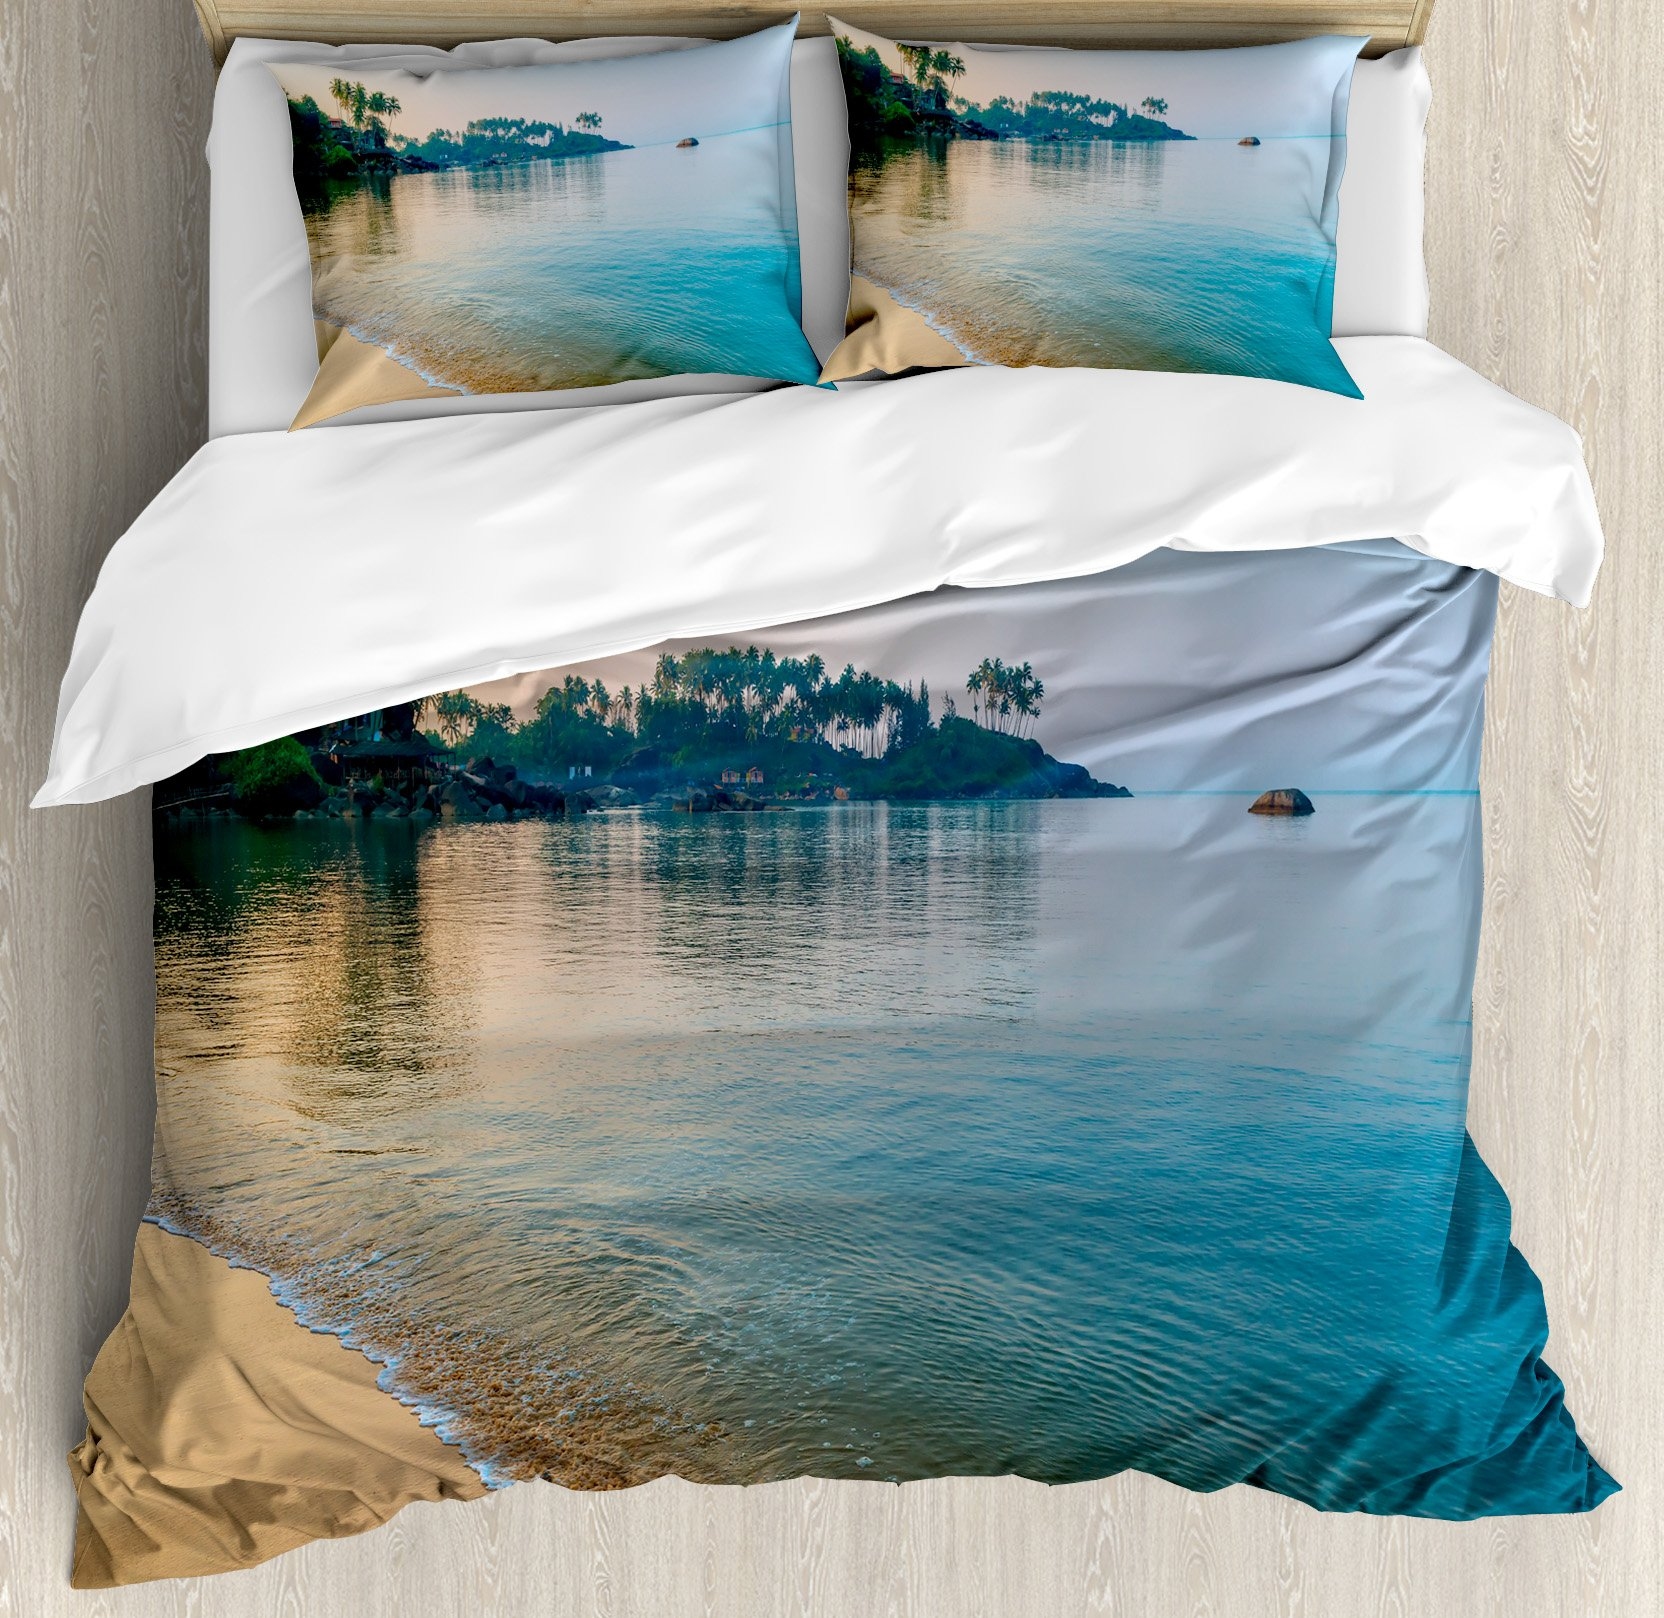 Ocean Duvet Cover Set King Size by Ambesonne, Morning Sun Rays and Palm Trees on the Edge of Golden Beach Relax Calm Theme, Decorative 3 Piece Bedding Set with 2 Pillow Shams, Green Blue Cream